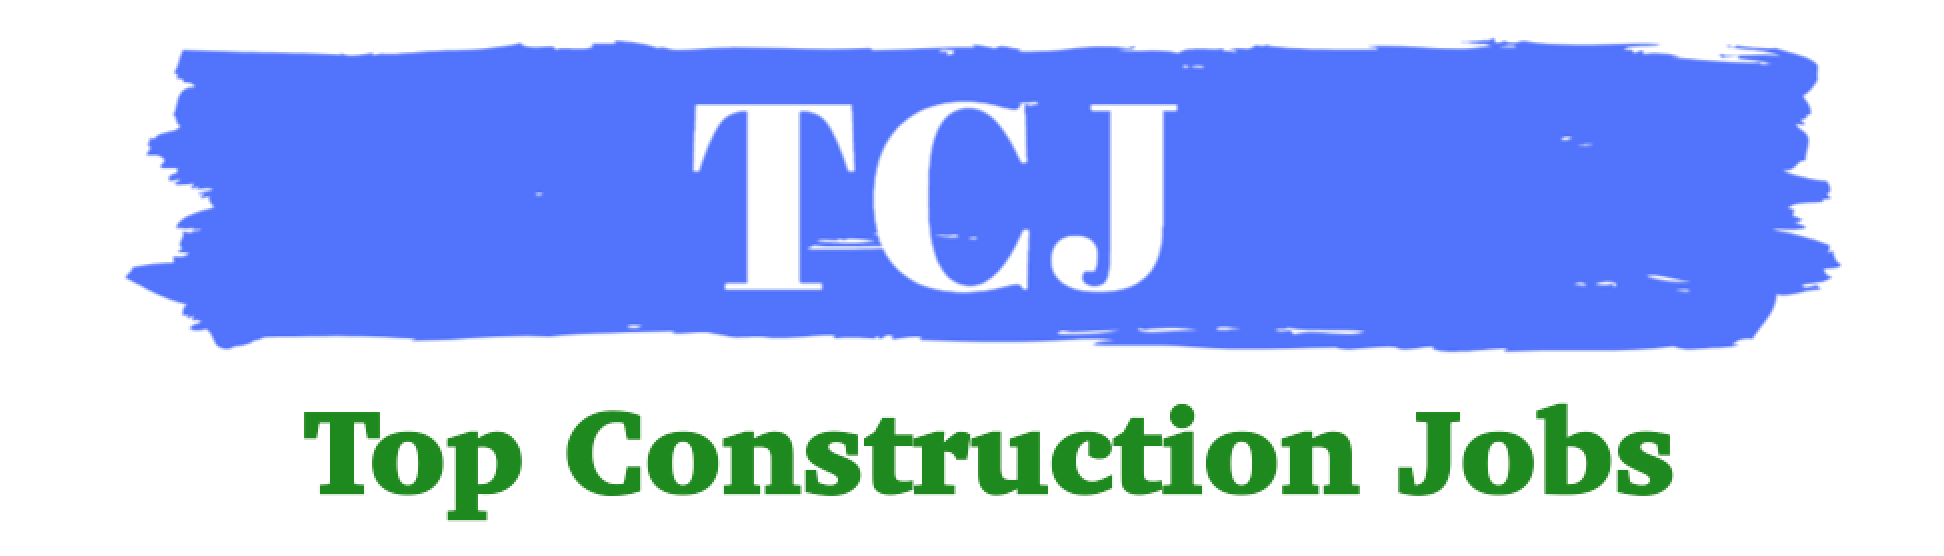 Top Construction Jobs